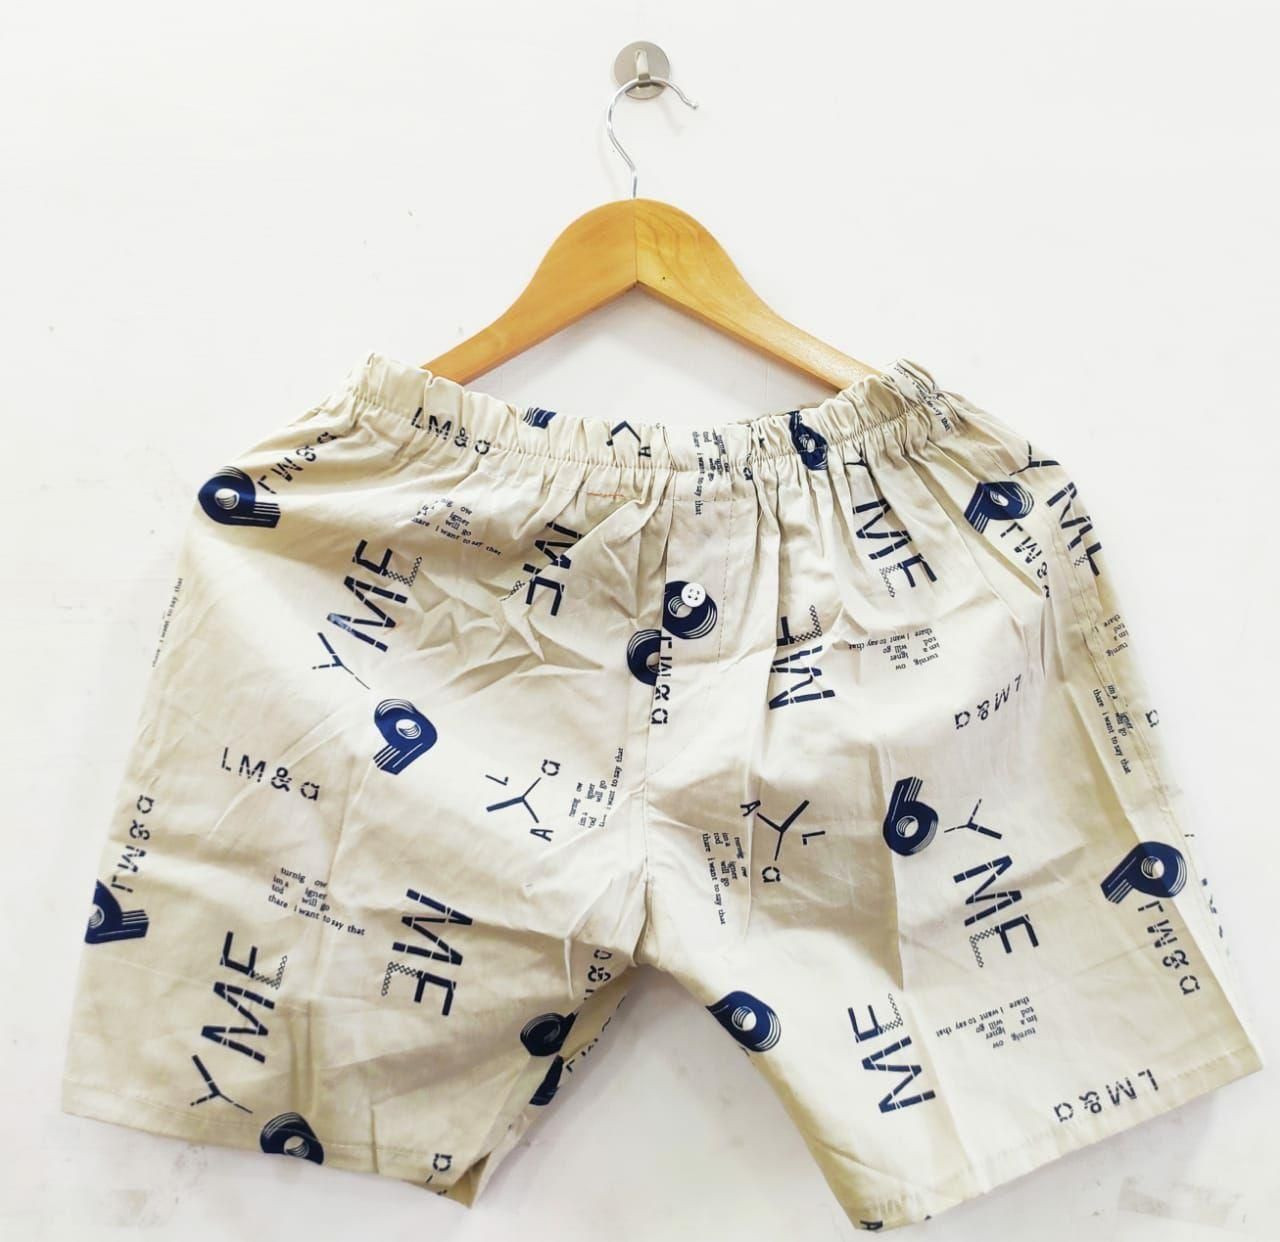 Brand- Look & see. Best Quality Men's Shorts available in variety of color and print.